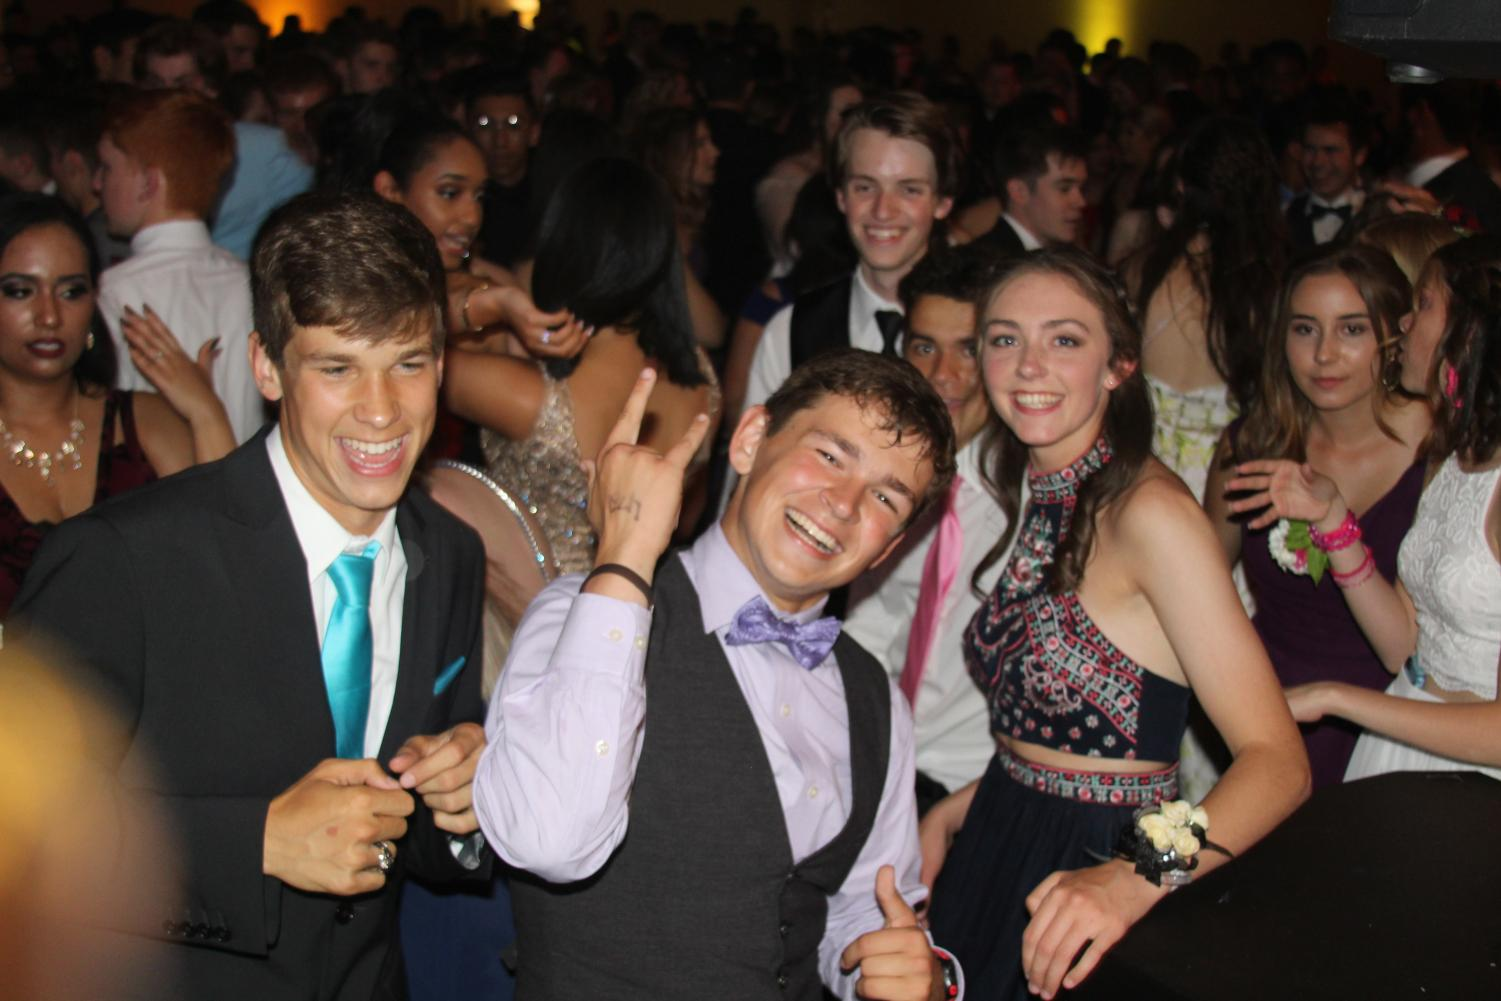 Senior Jacob Carden enjoys the dance floor with his classmates at Prom 2017.